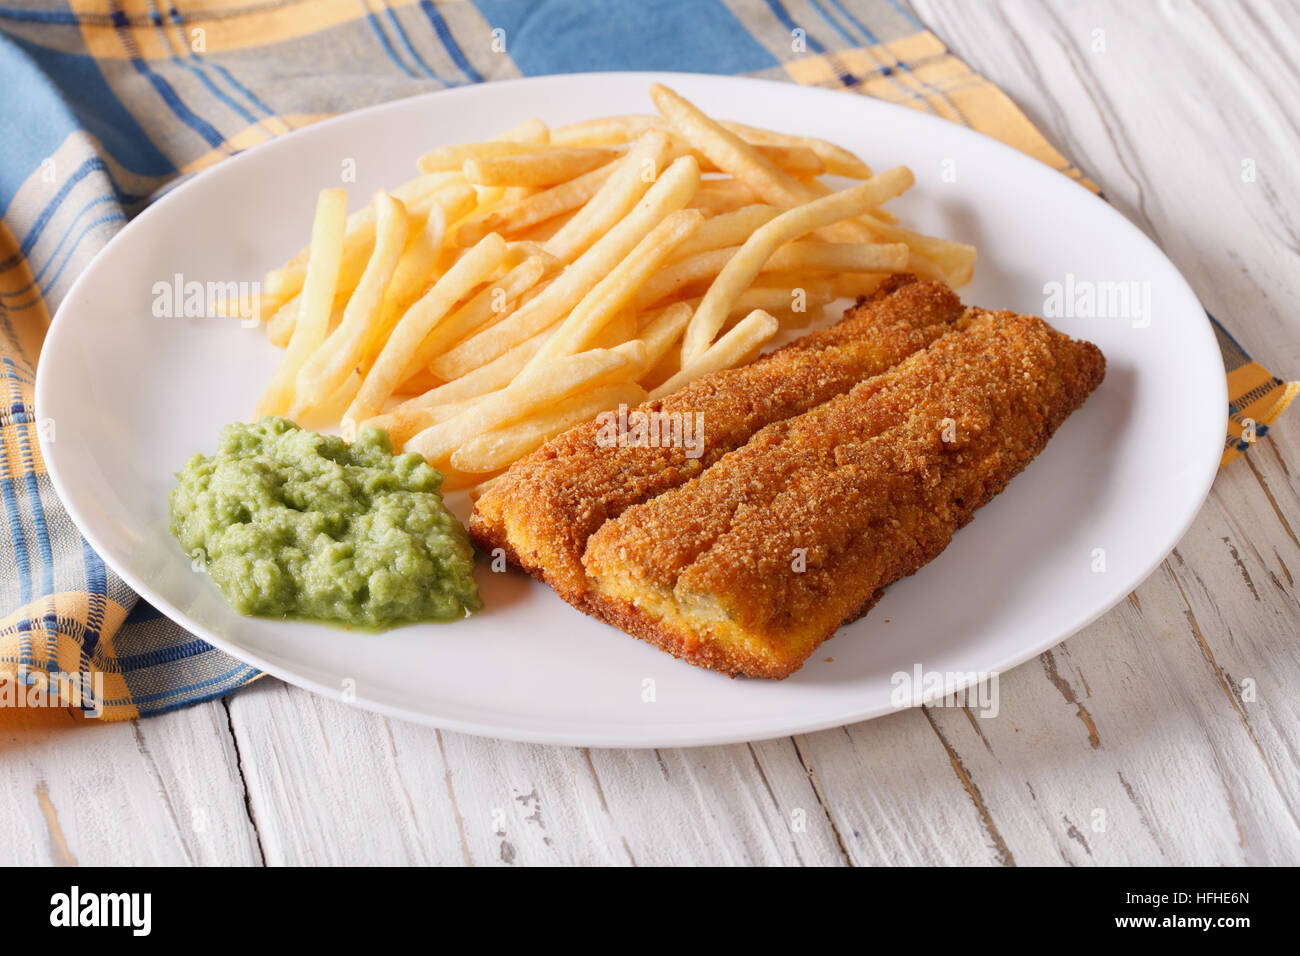 English food: fish in breadcrumbs with fried potatoes and pea puree on a plate. horizontal - Stock Image